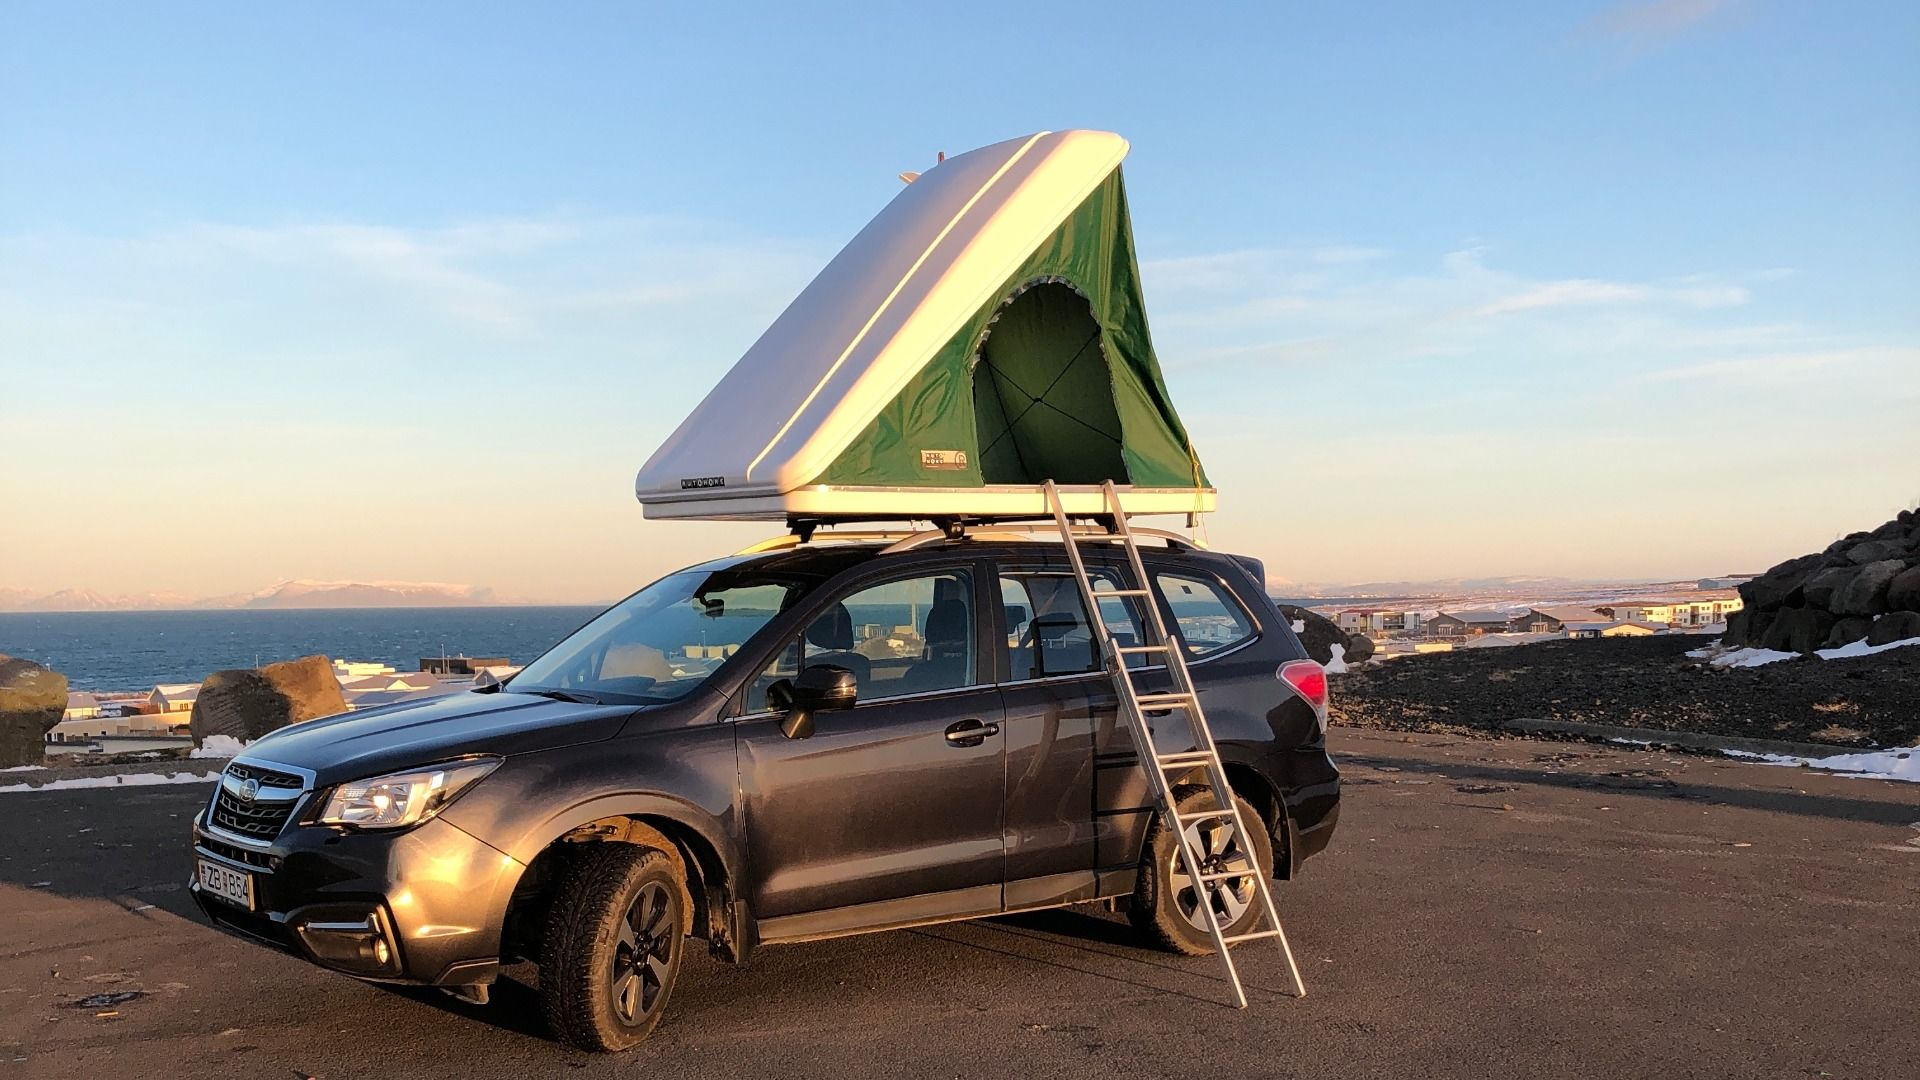 Rent A Subaru Forester Roof Tent For 2 Persons In